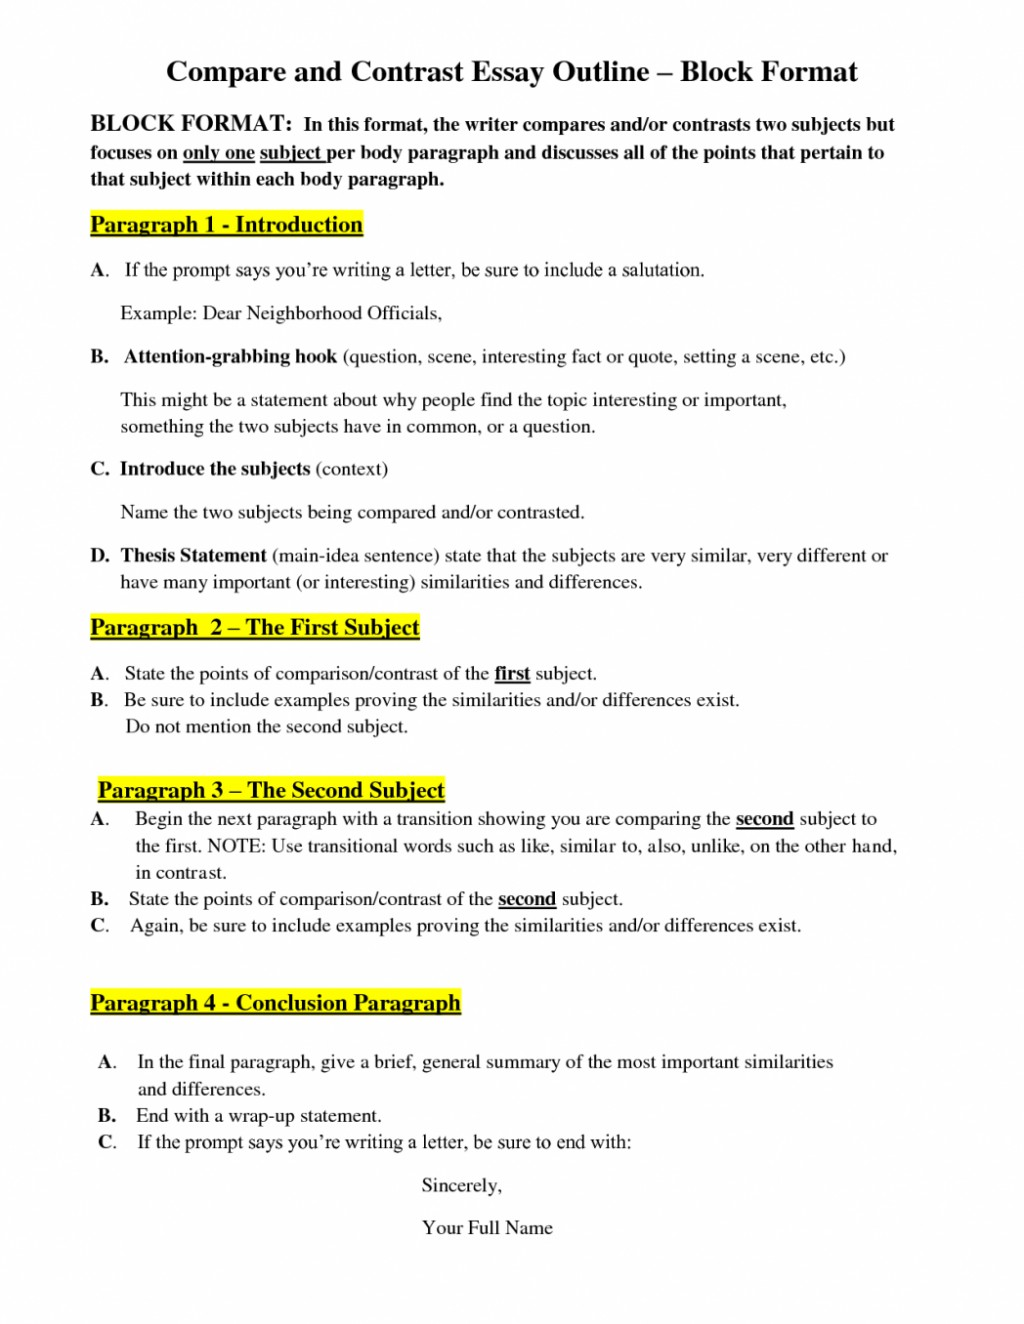 013 Ucf Admissions Essay Compare And Contrast Samples For College Outline Block App Prompts Admission Texas Prompt Ucs 1048x1356 Imposing Examples Required Topics 2018 Large